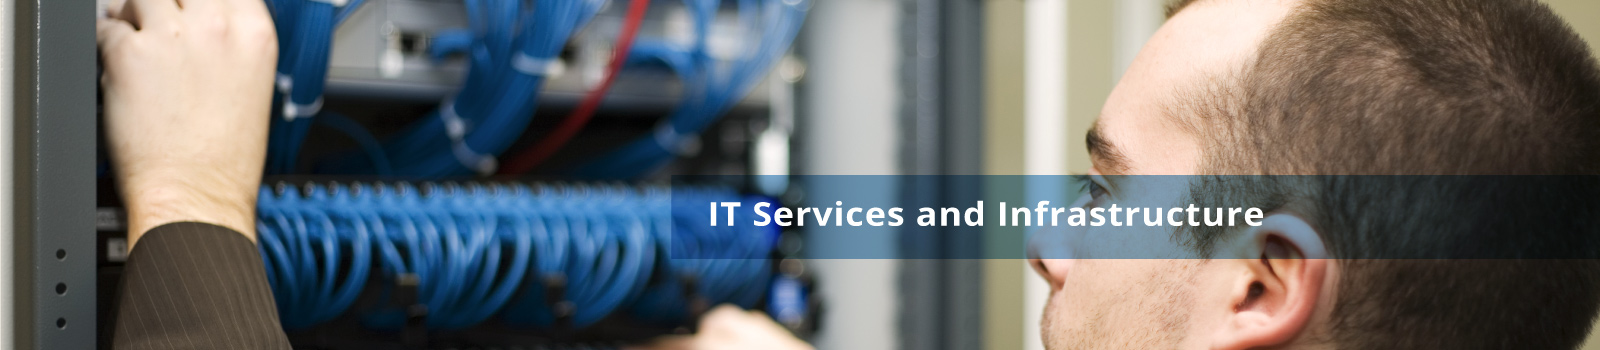 IT Services and Infrastructure